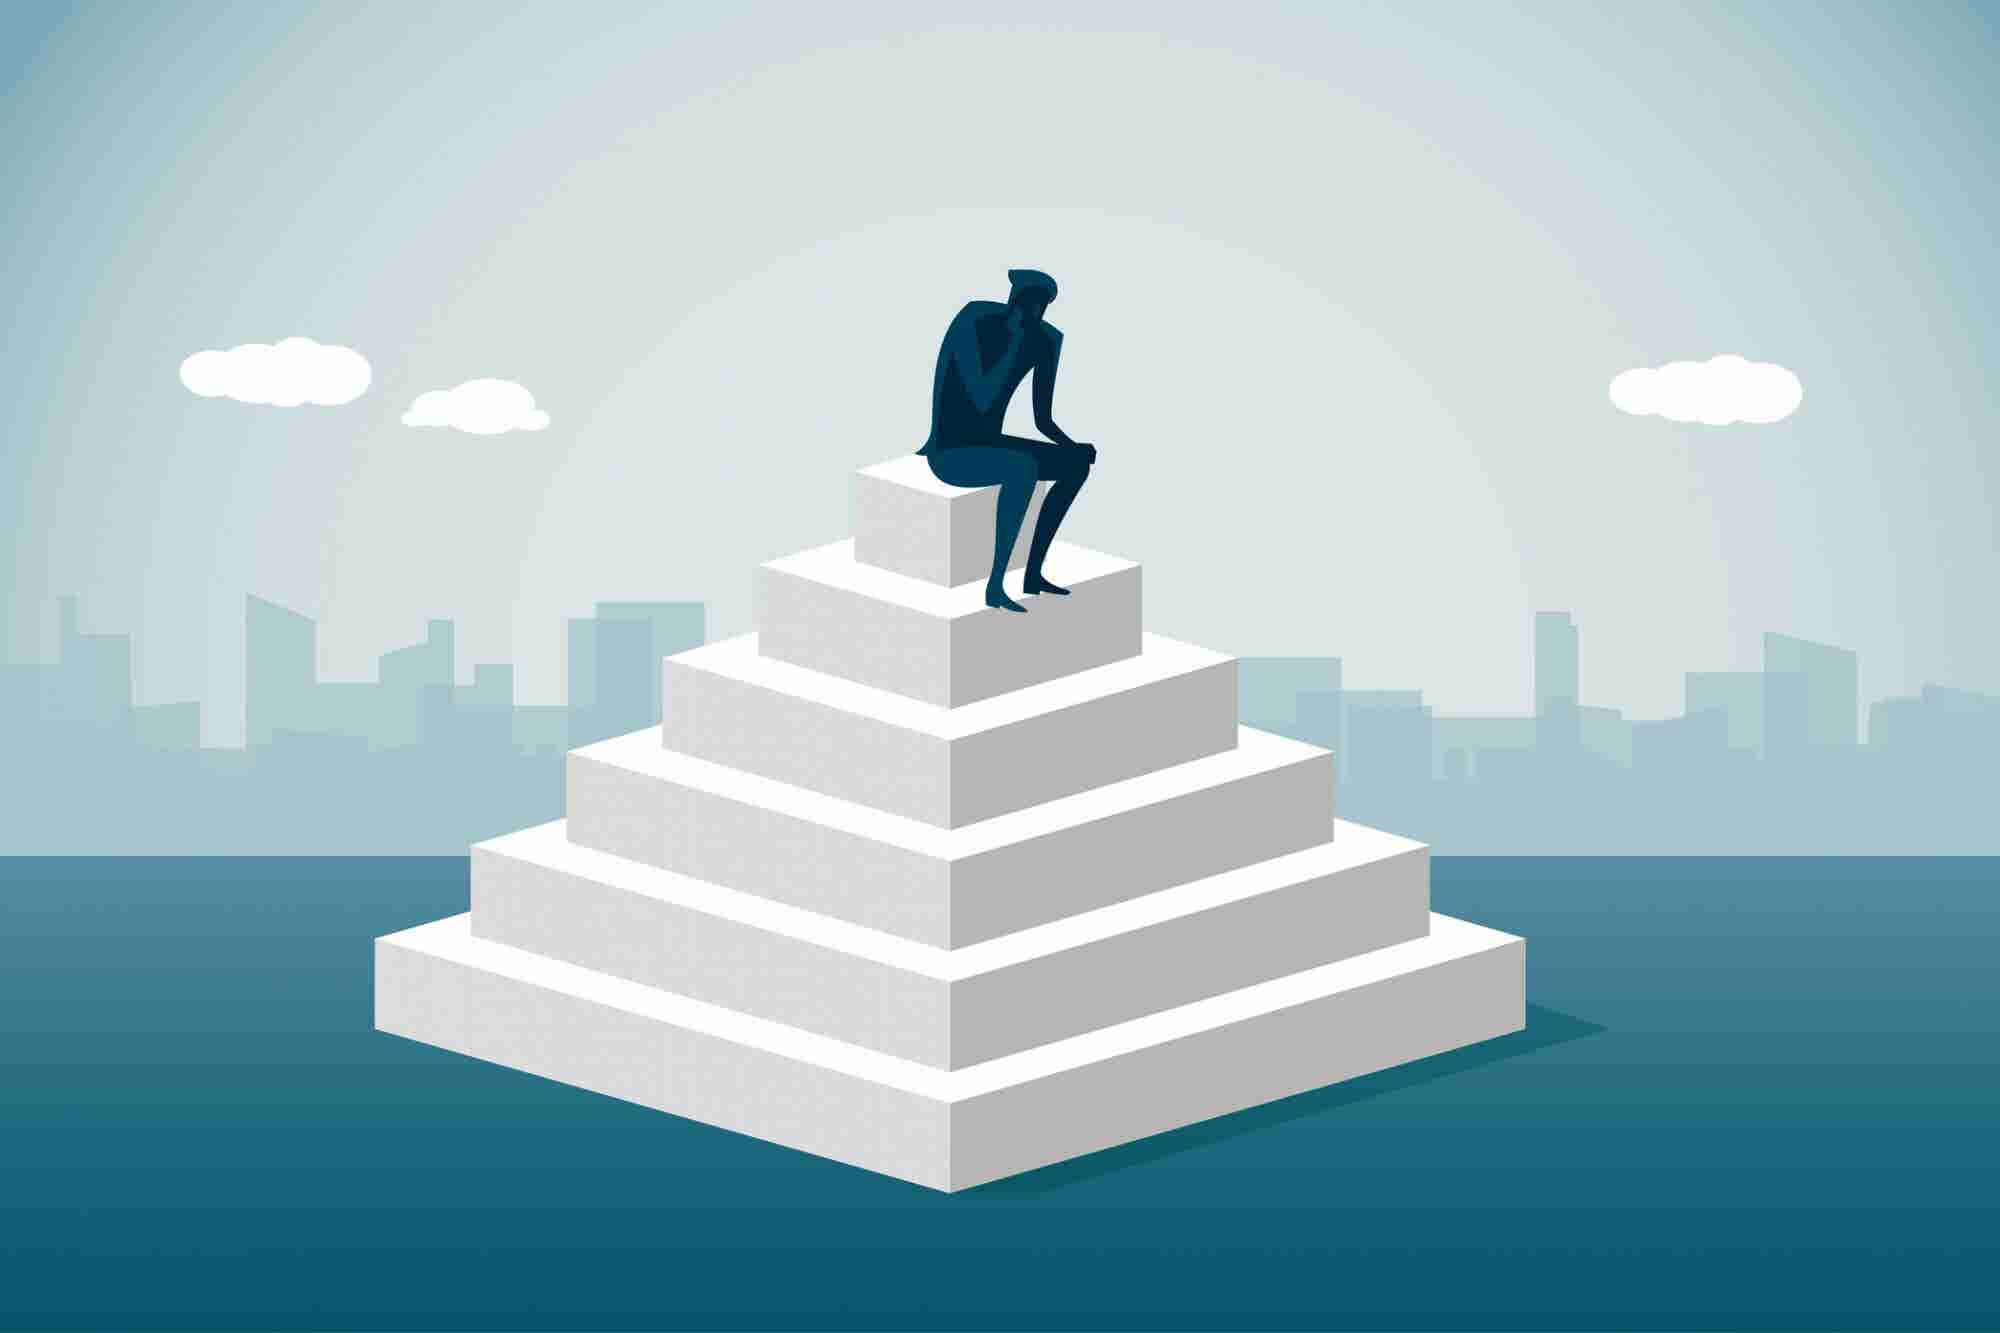 It's Time to Rethink the Corporate Pyramid